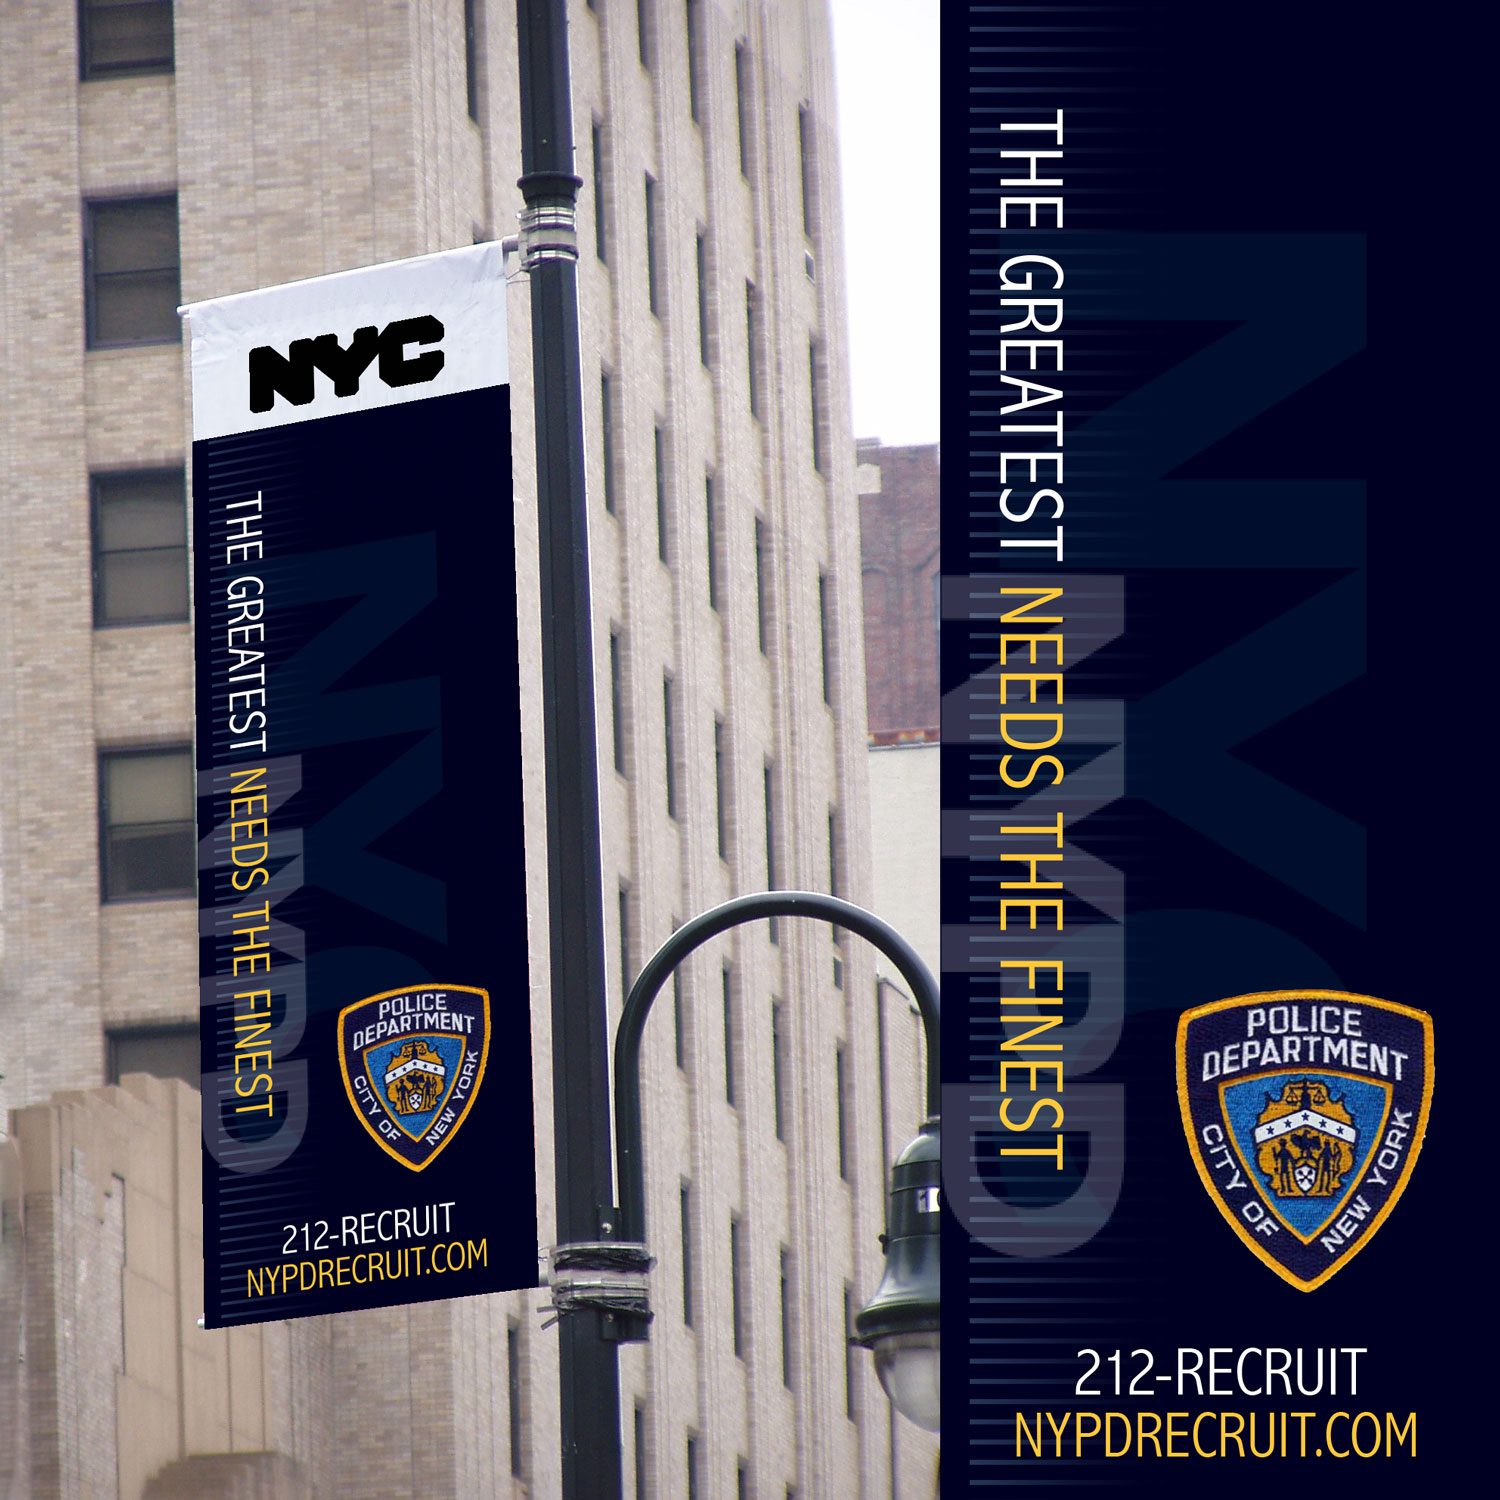 NYPD-banners-1500